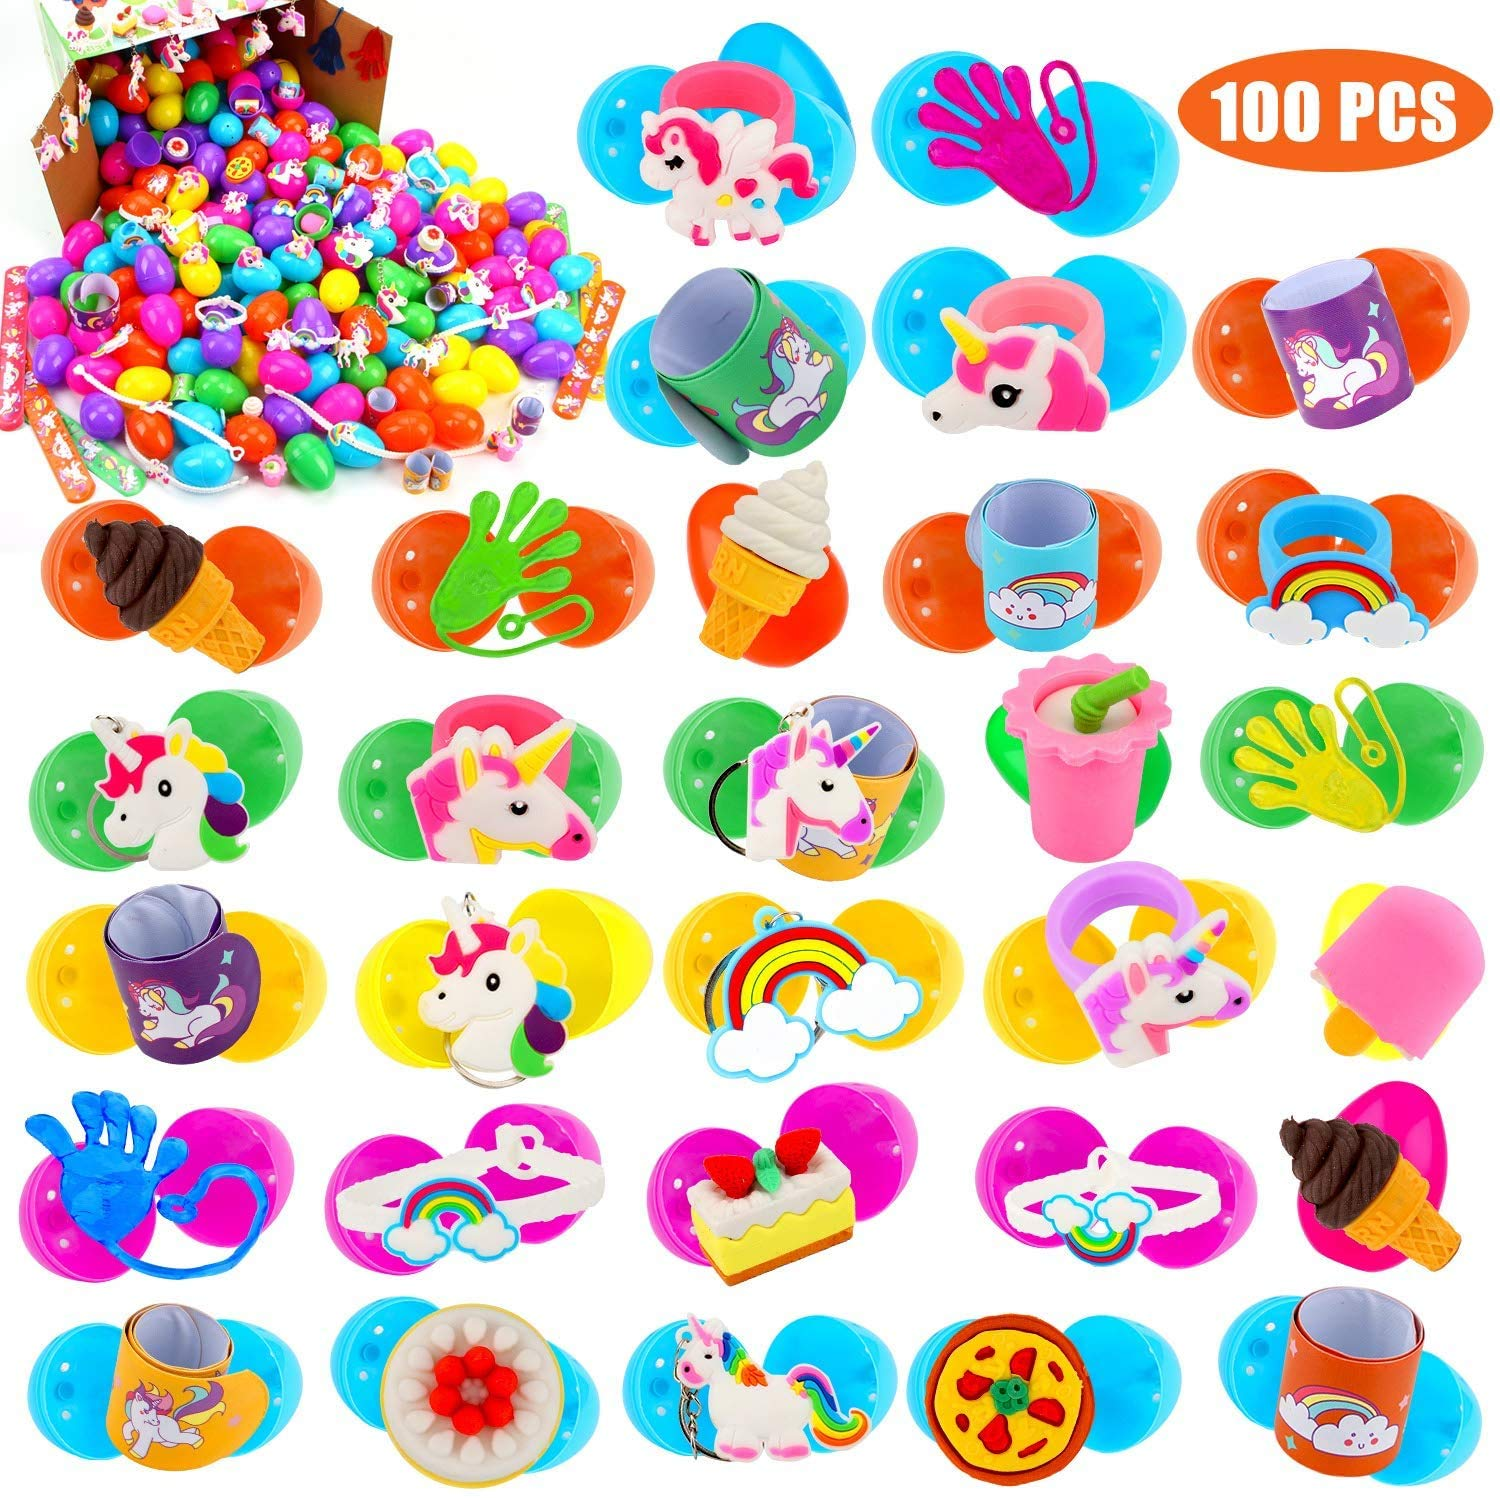 UFUNGA 100 Pack Toy Filled Easter Eggs-Colorful Plastic Easter Eggs with Different Kinds of Little Toys,for Easter Hunt, Basket Stuffers Fillers, Theme Party Favor for Kids (2.36in)